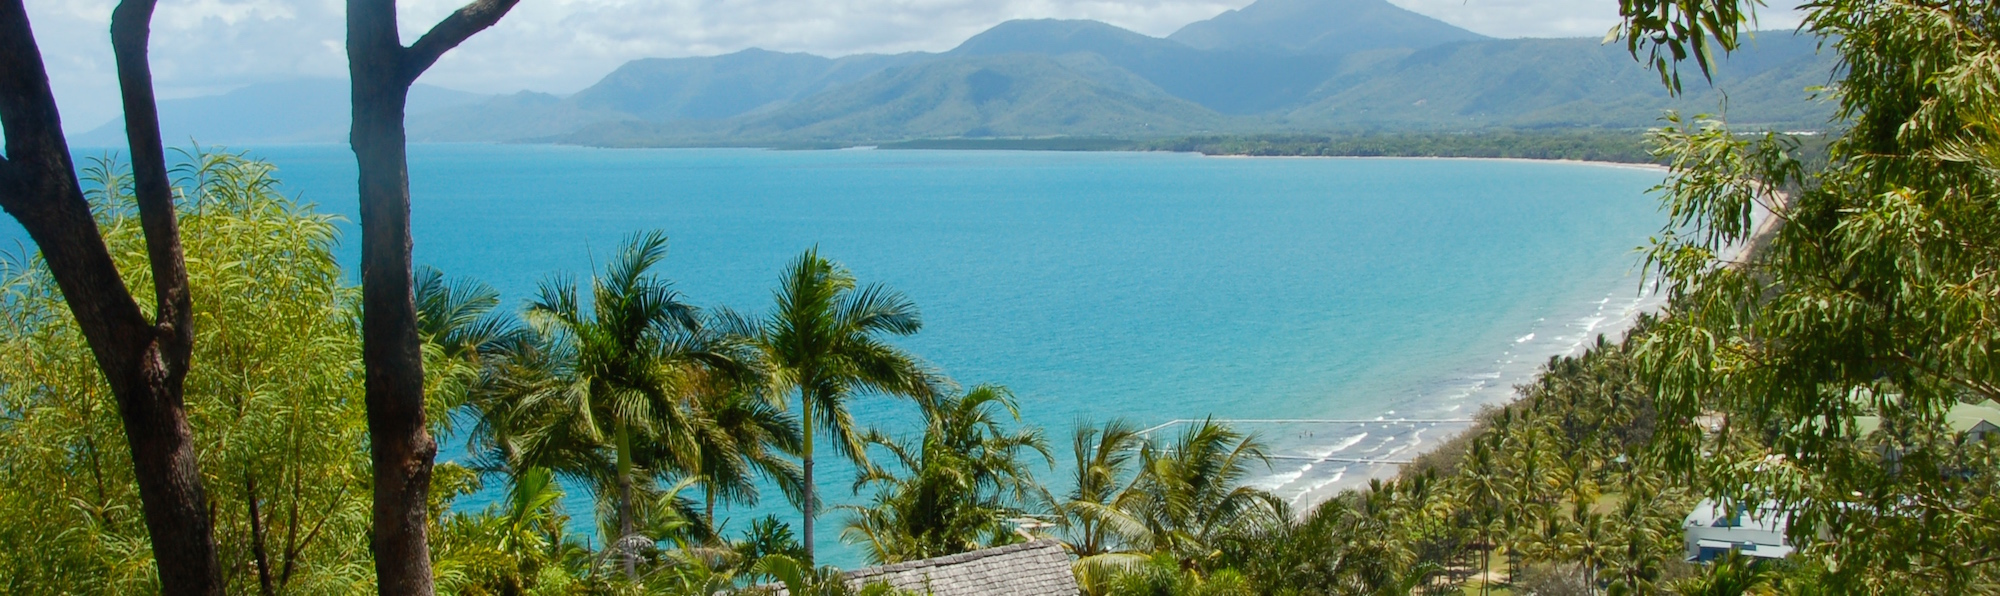 De cairns a Cape Tribulation, Australia